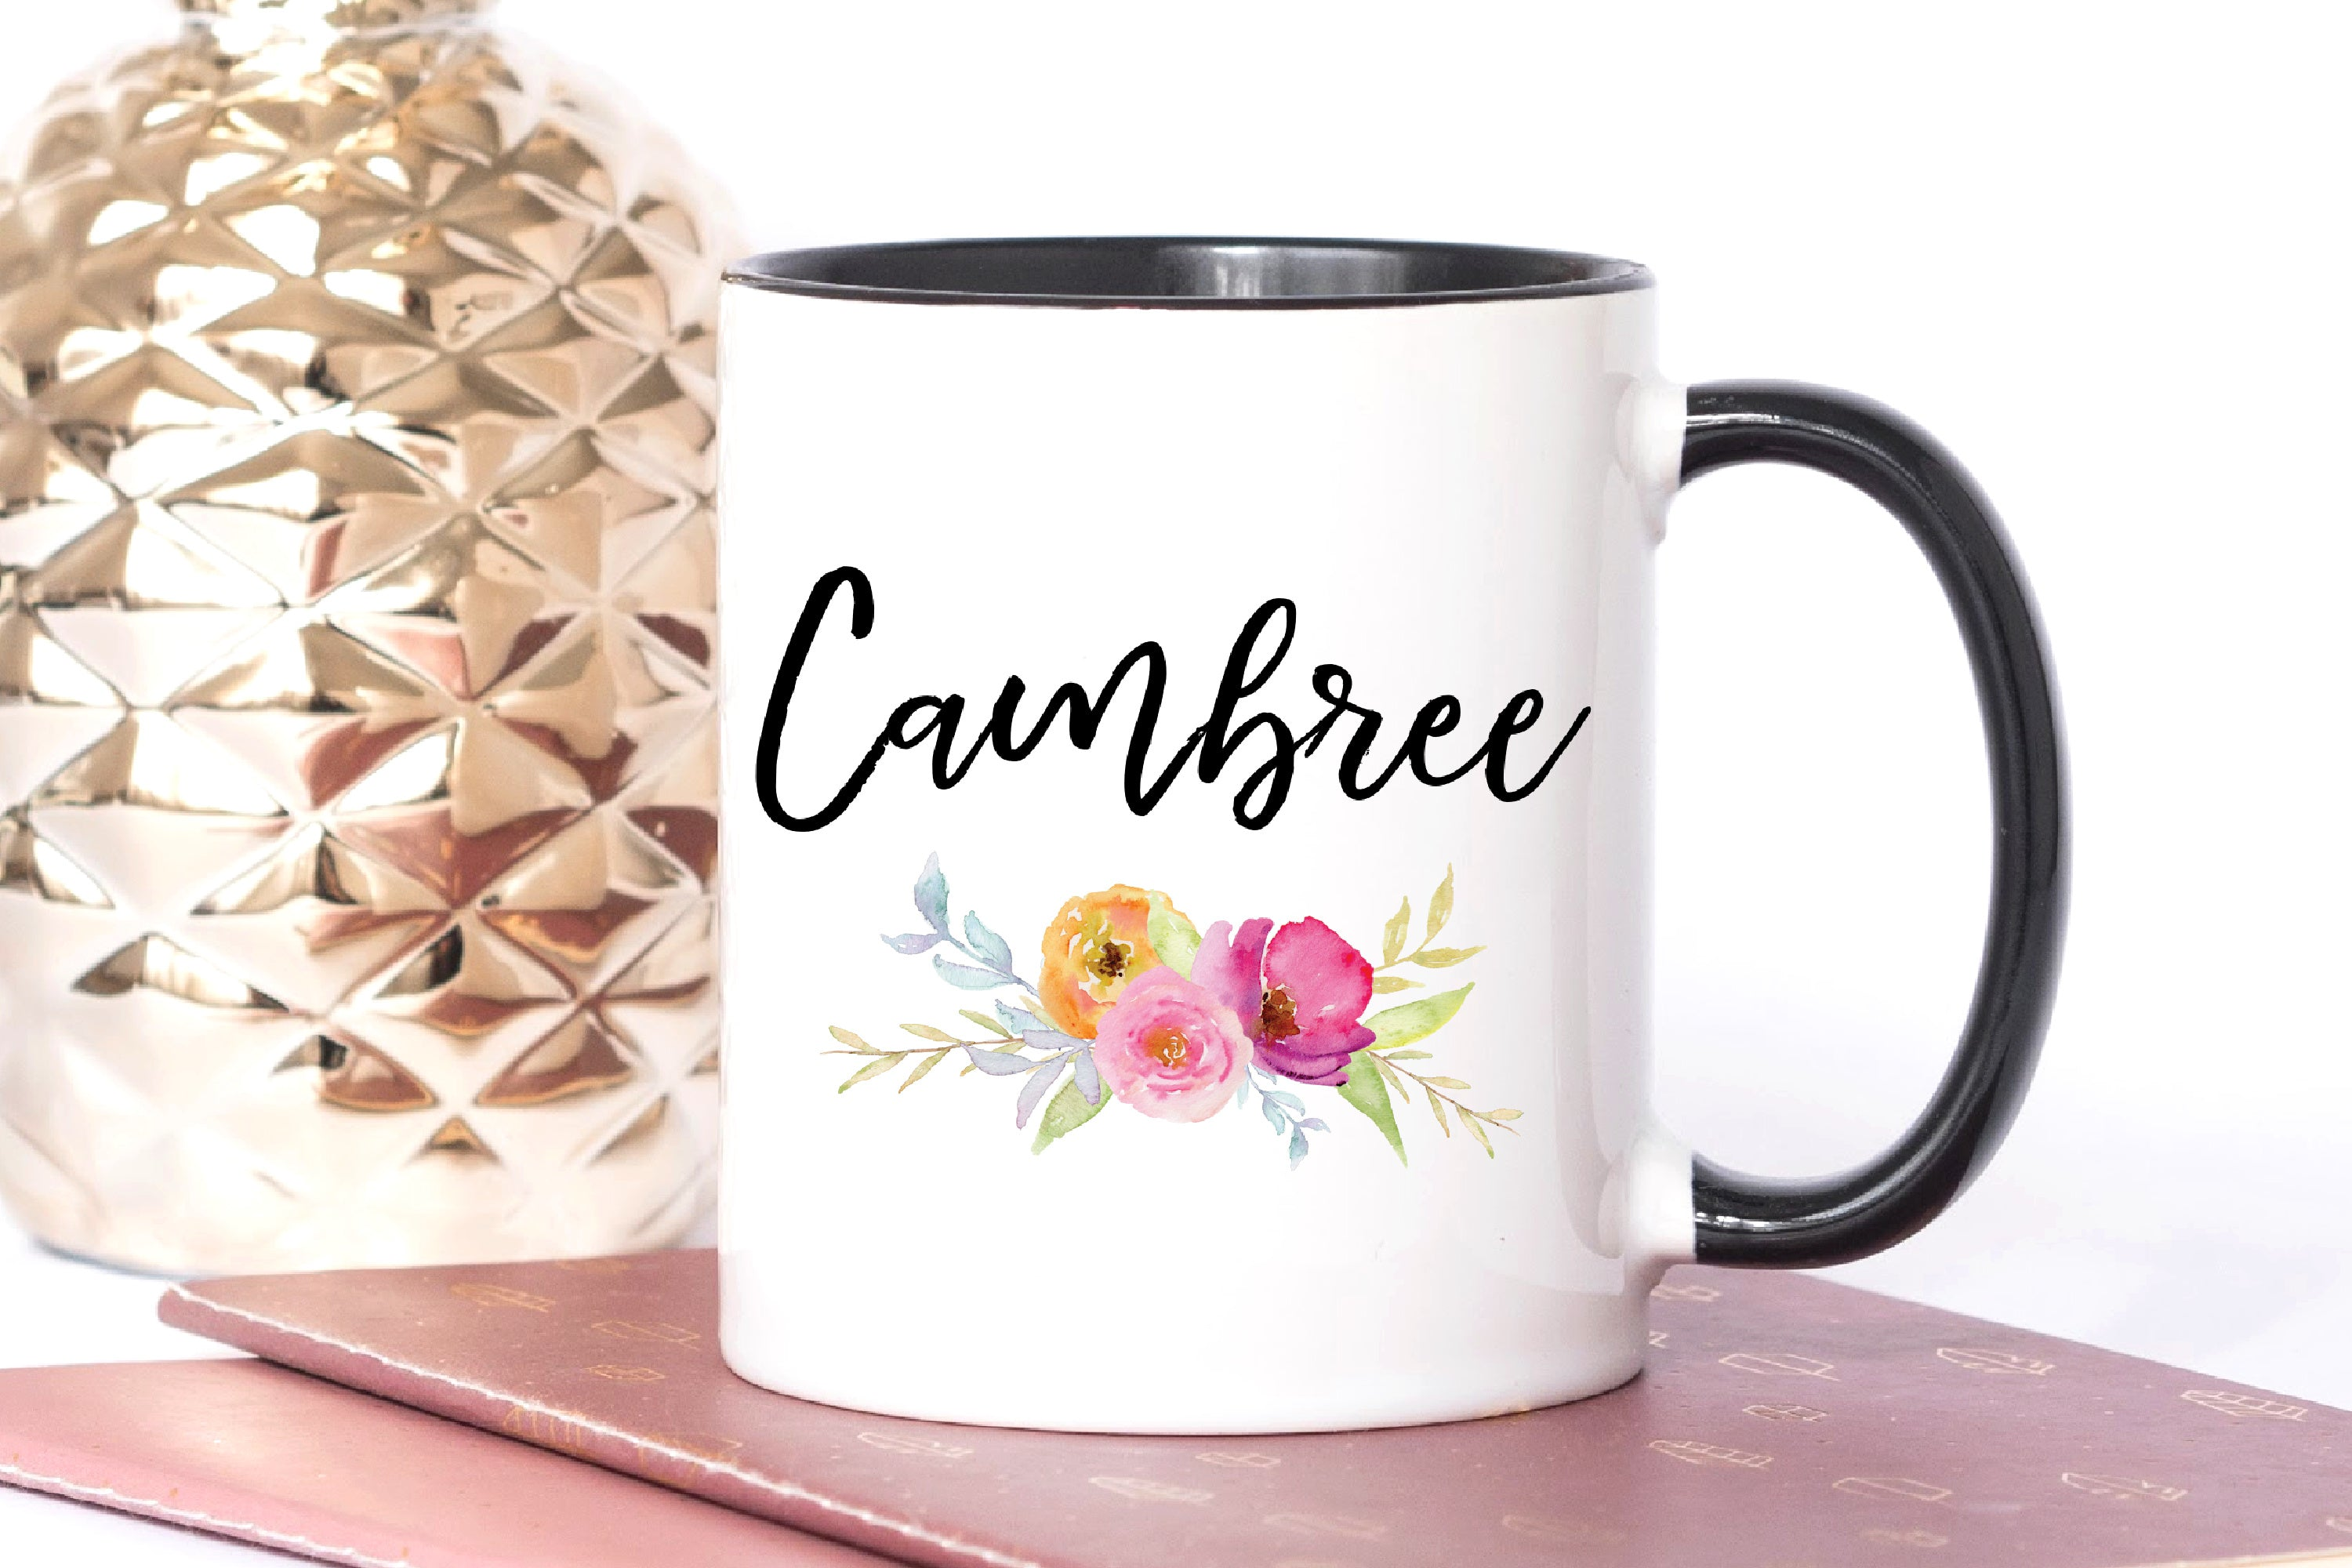 Personal Coffee Mugs with Name